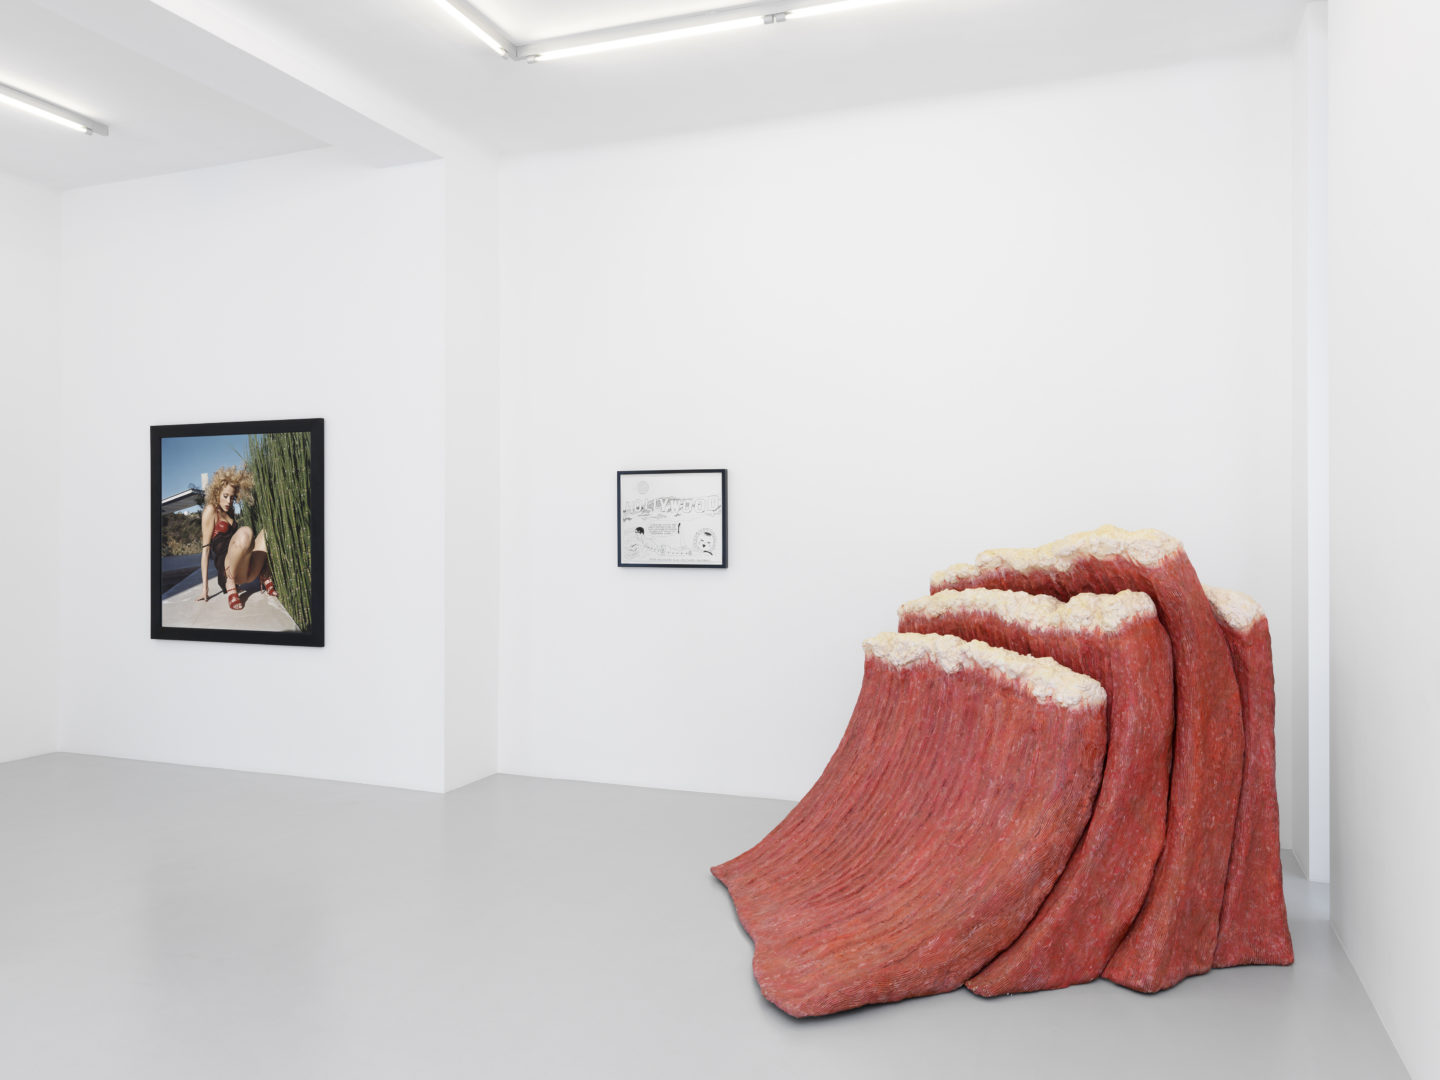 Exhibition View Bettina Rheims, Mike Kelley and Jim Shaw «Look West, Young Man!» at Galerie Xippas, Geneva / Photo: Annik Wetter / Courtesy: Galerie Xippas